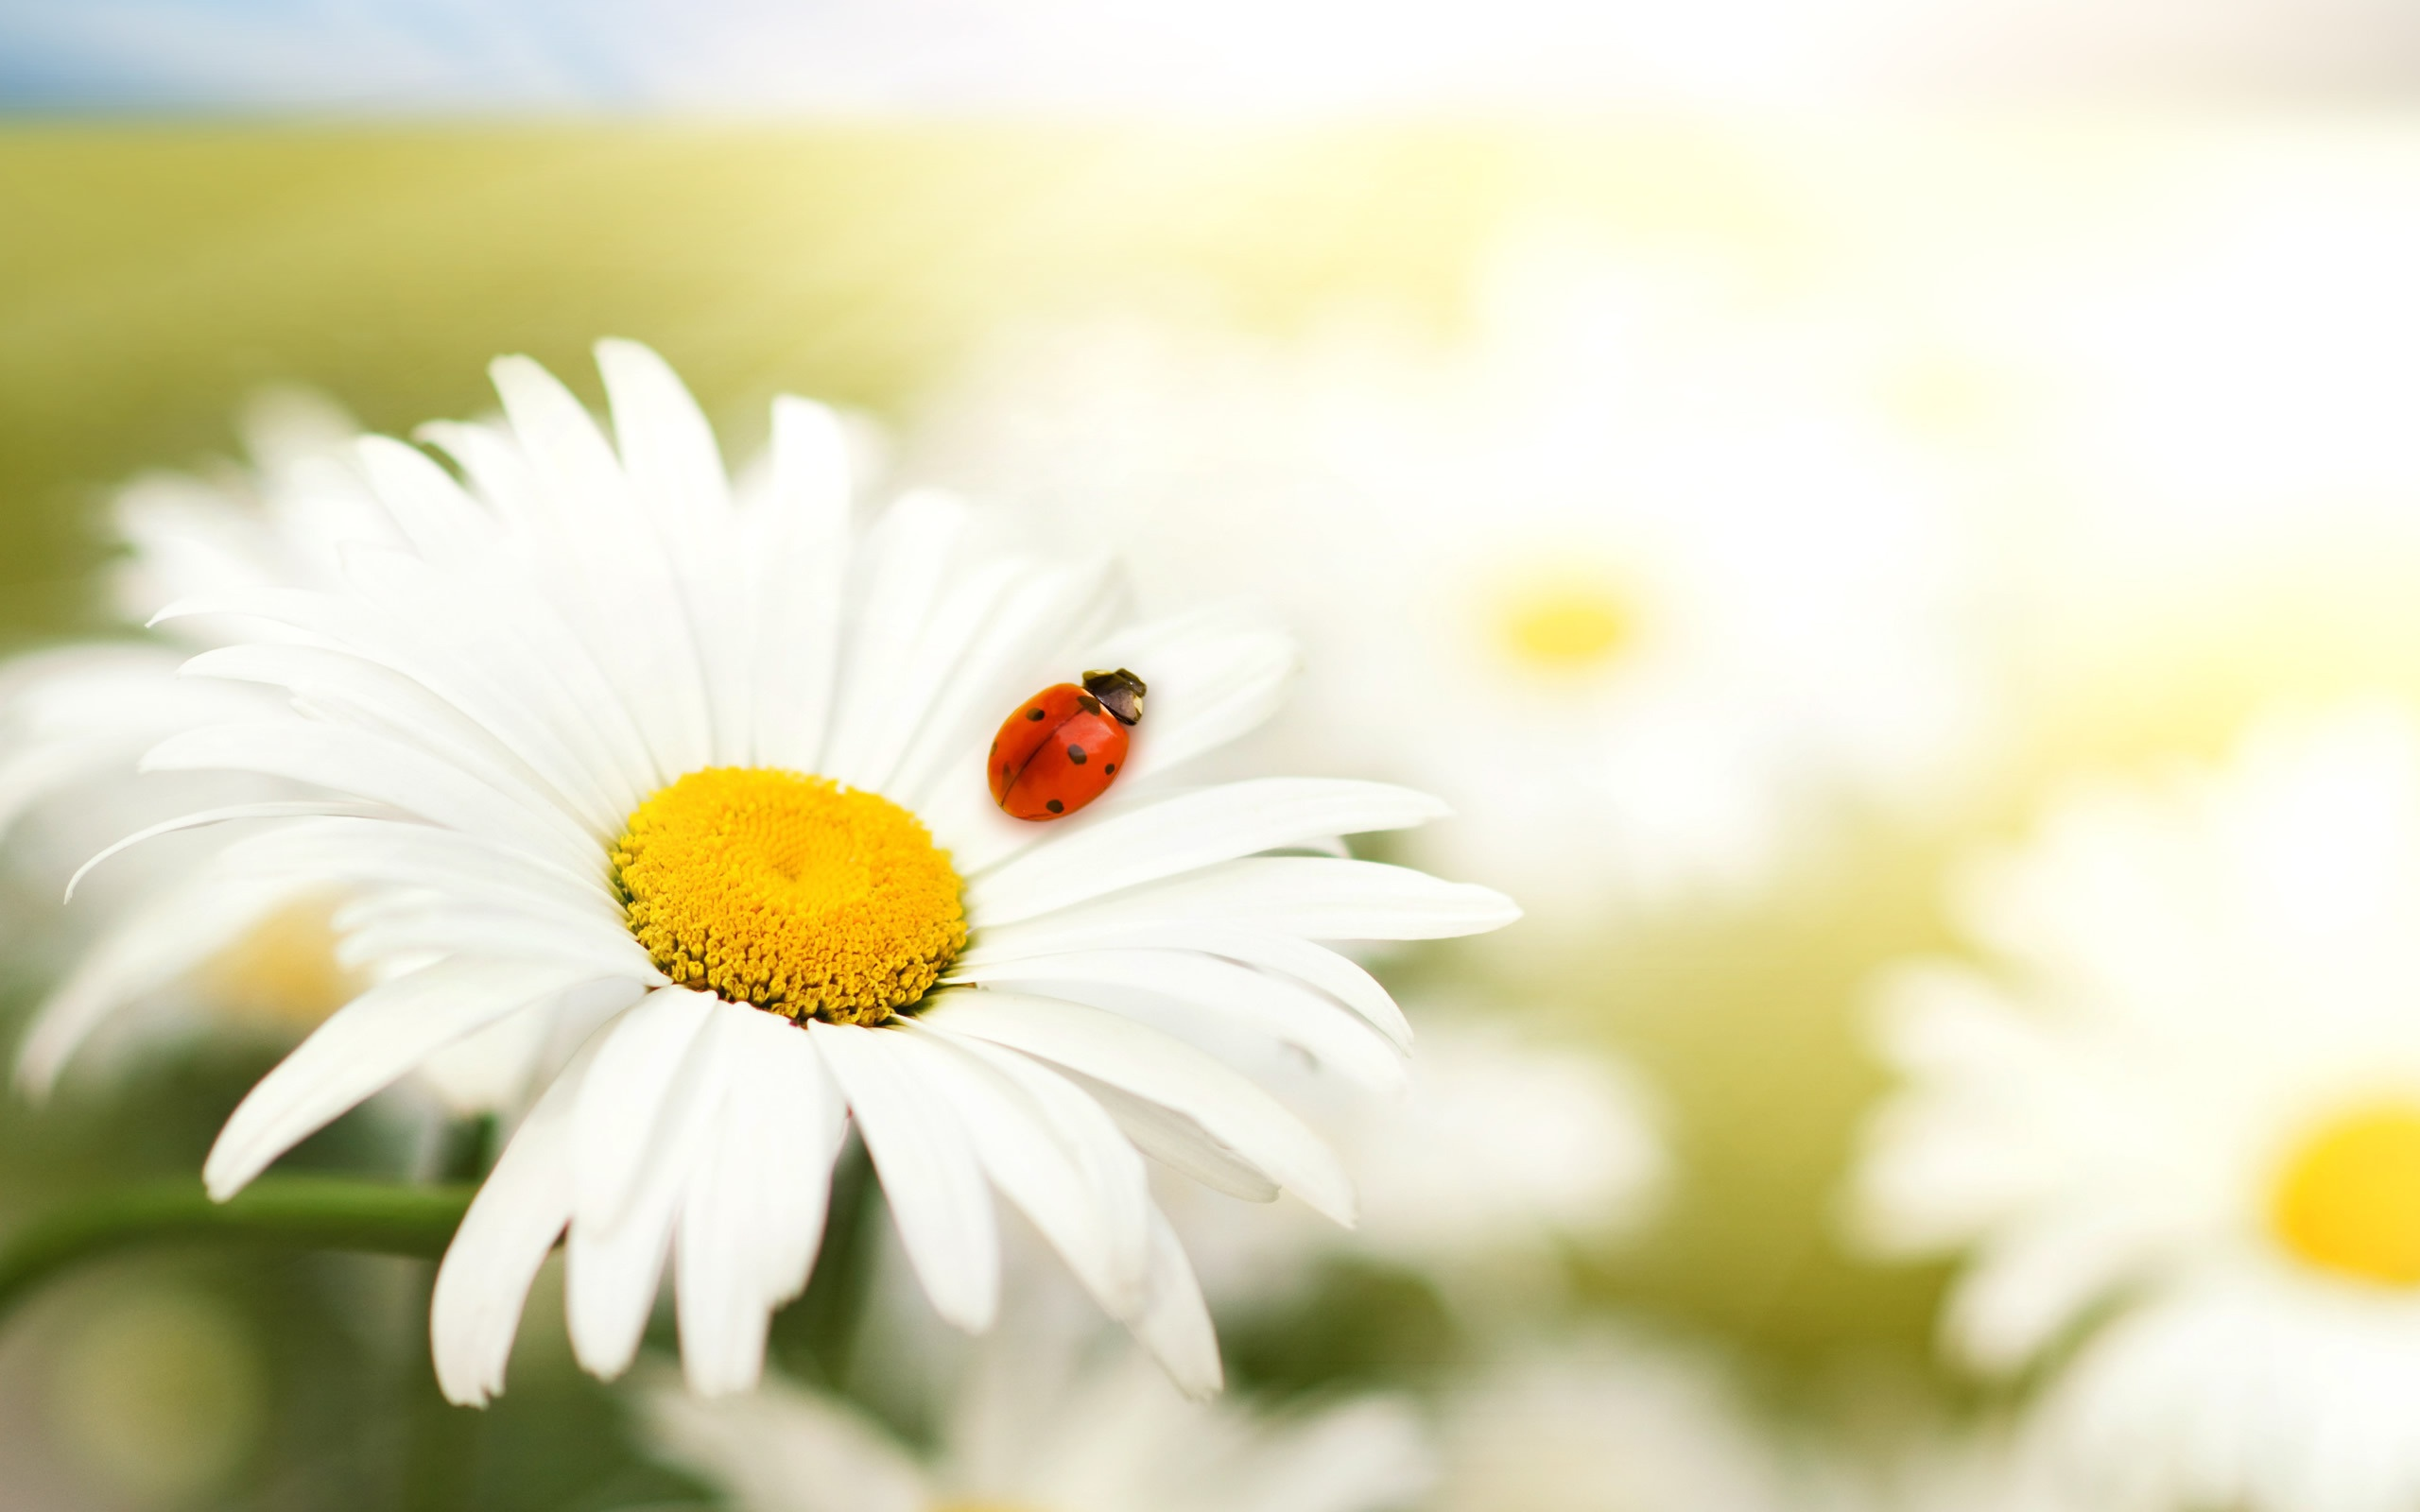 33176 download wallpaper Insects, Ladybugs screensavers and pictures for free